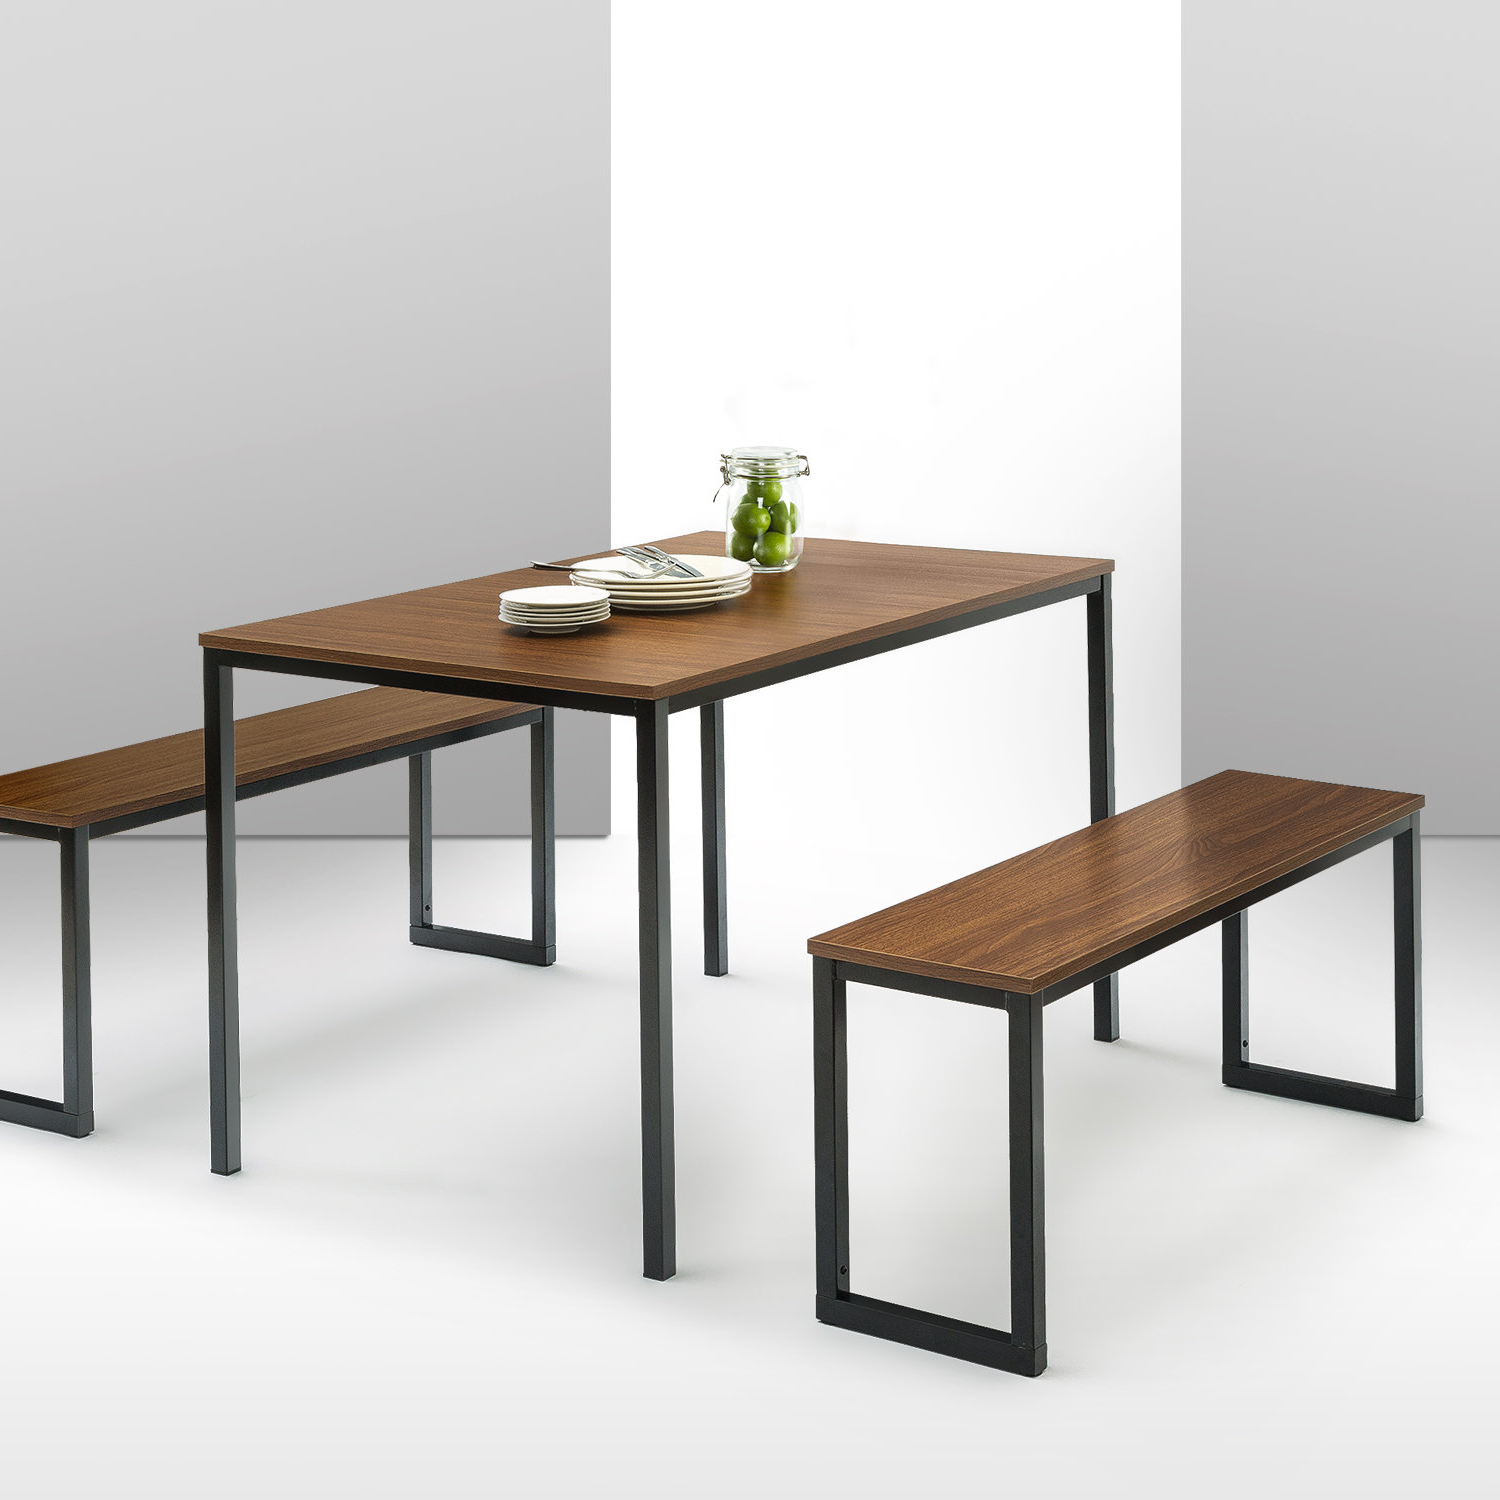 3 Piece Dining Sets With Regard To Preferred Frida 3 Piece Dining Table Set (Gallery 6 of 20)